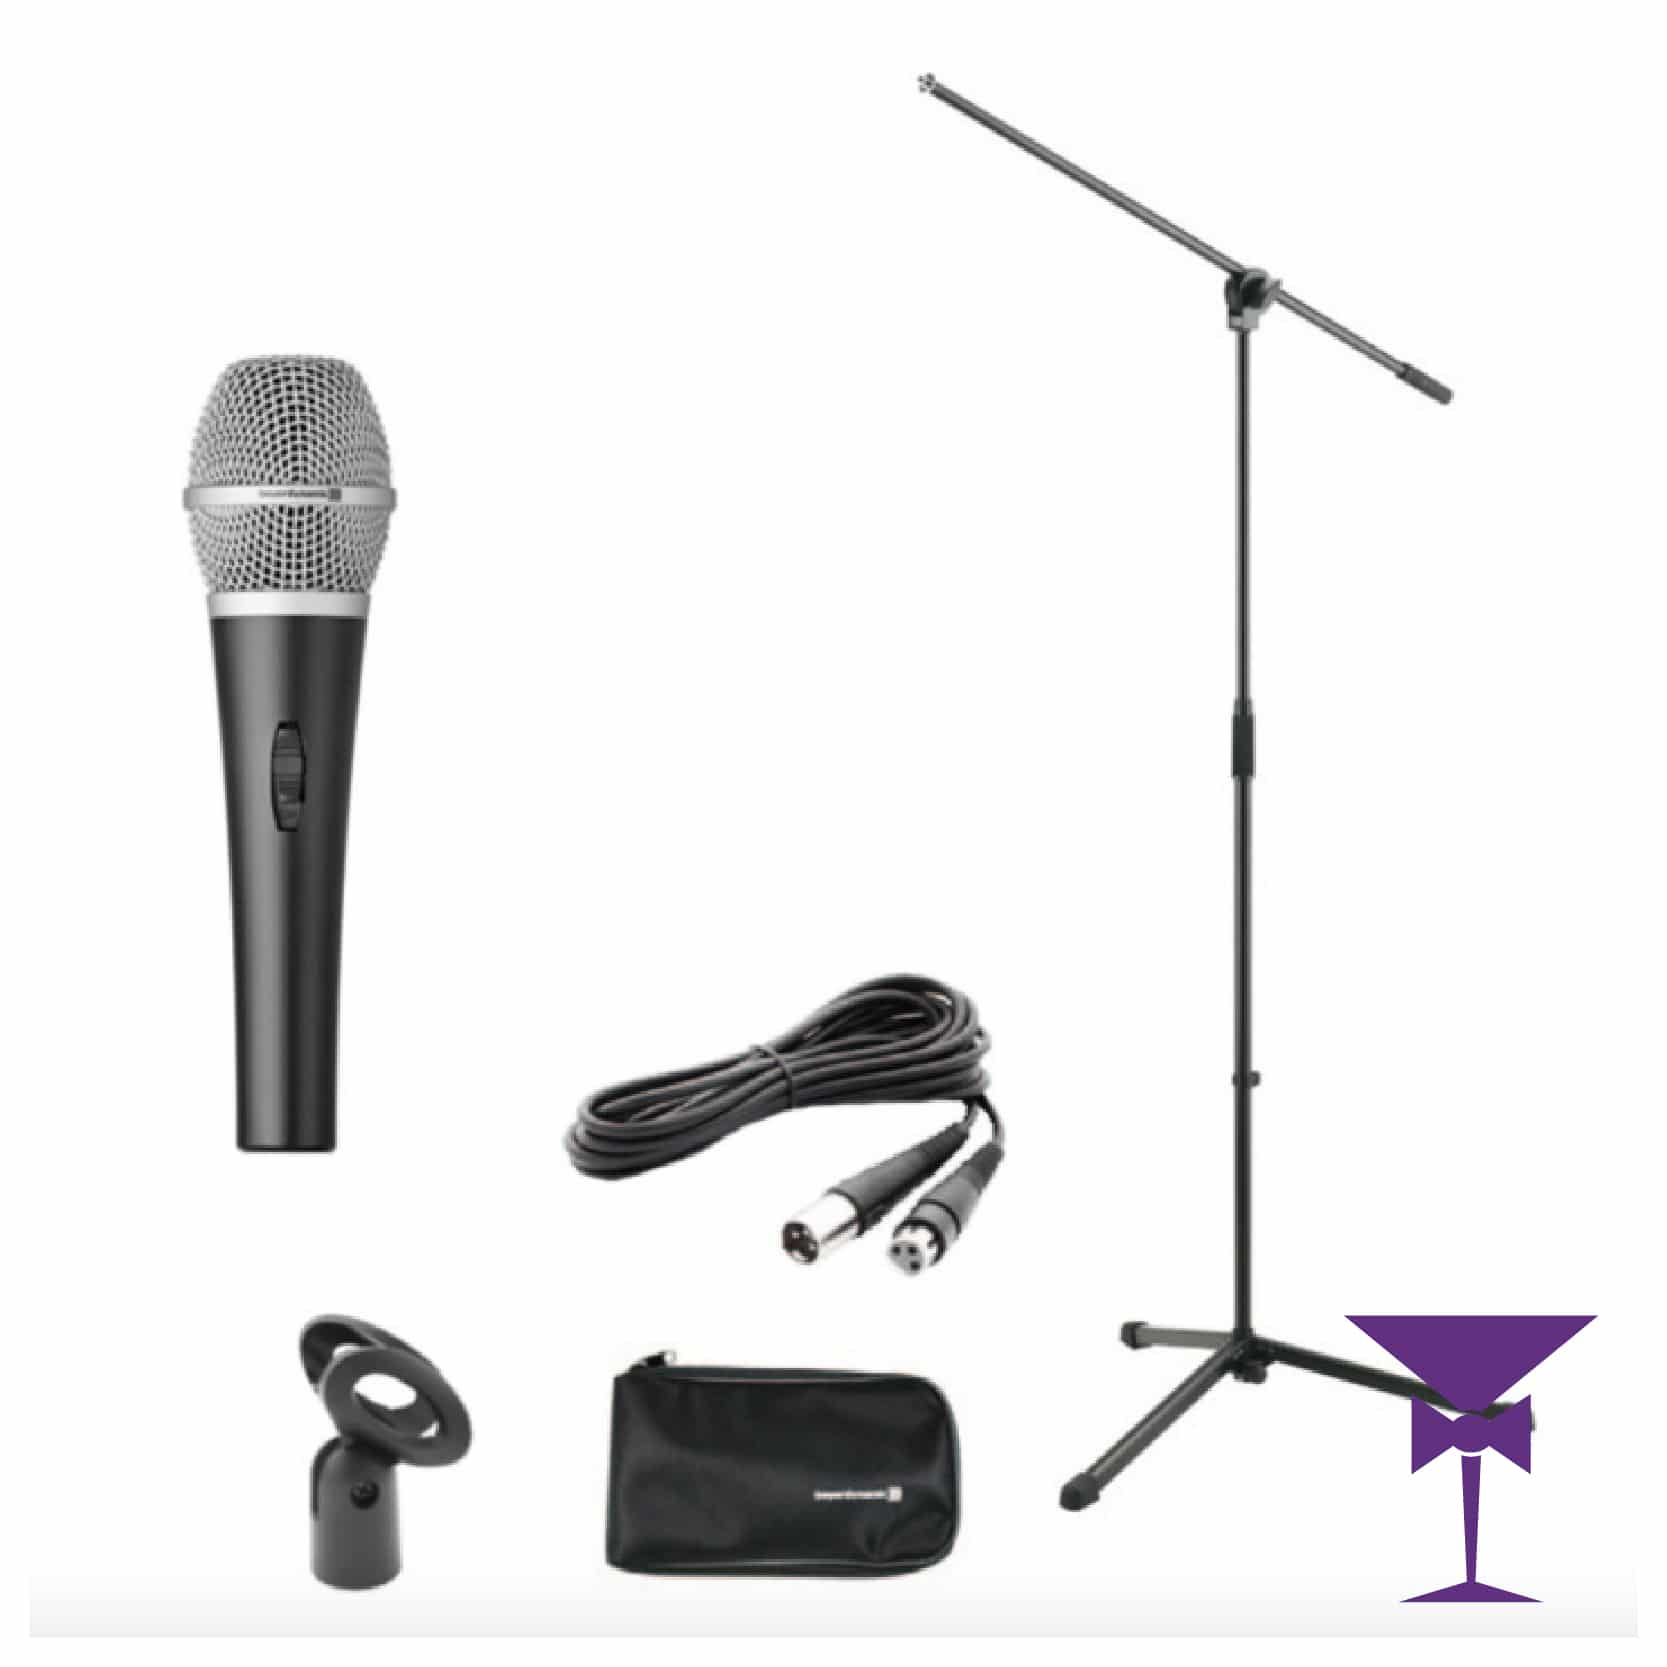 Wired Microphone Hire London & Kent